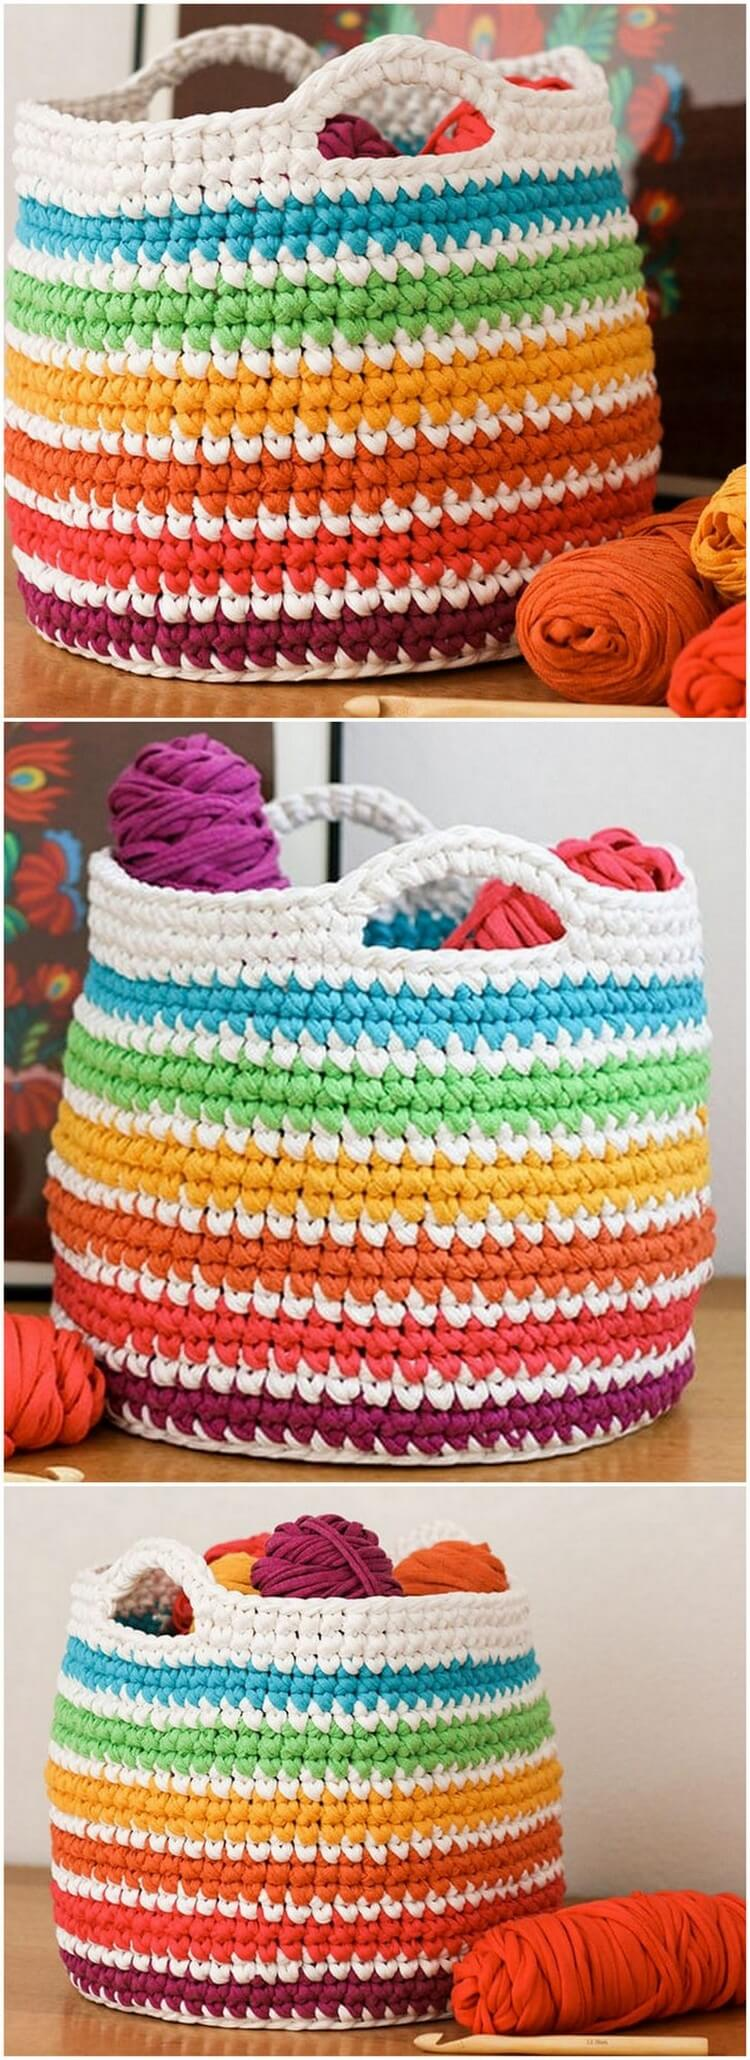 Crochet Basket Pattern (48)